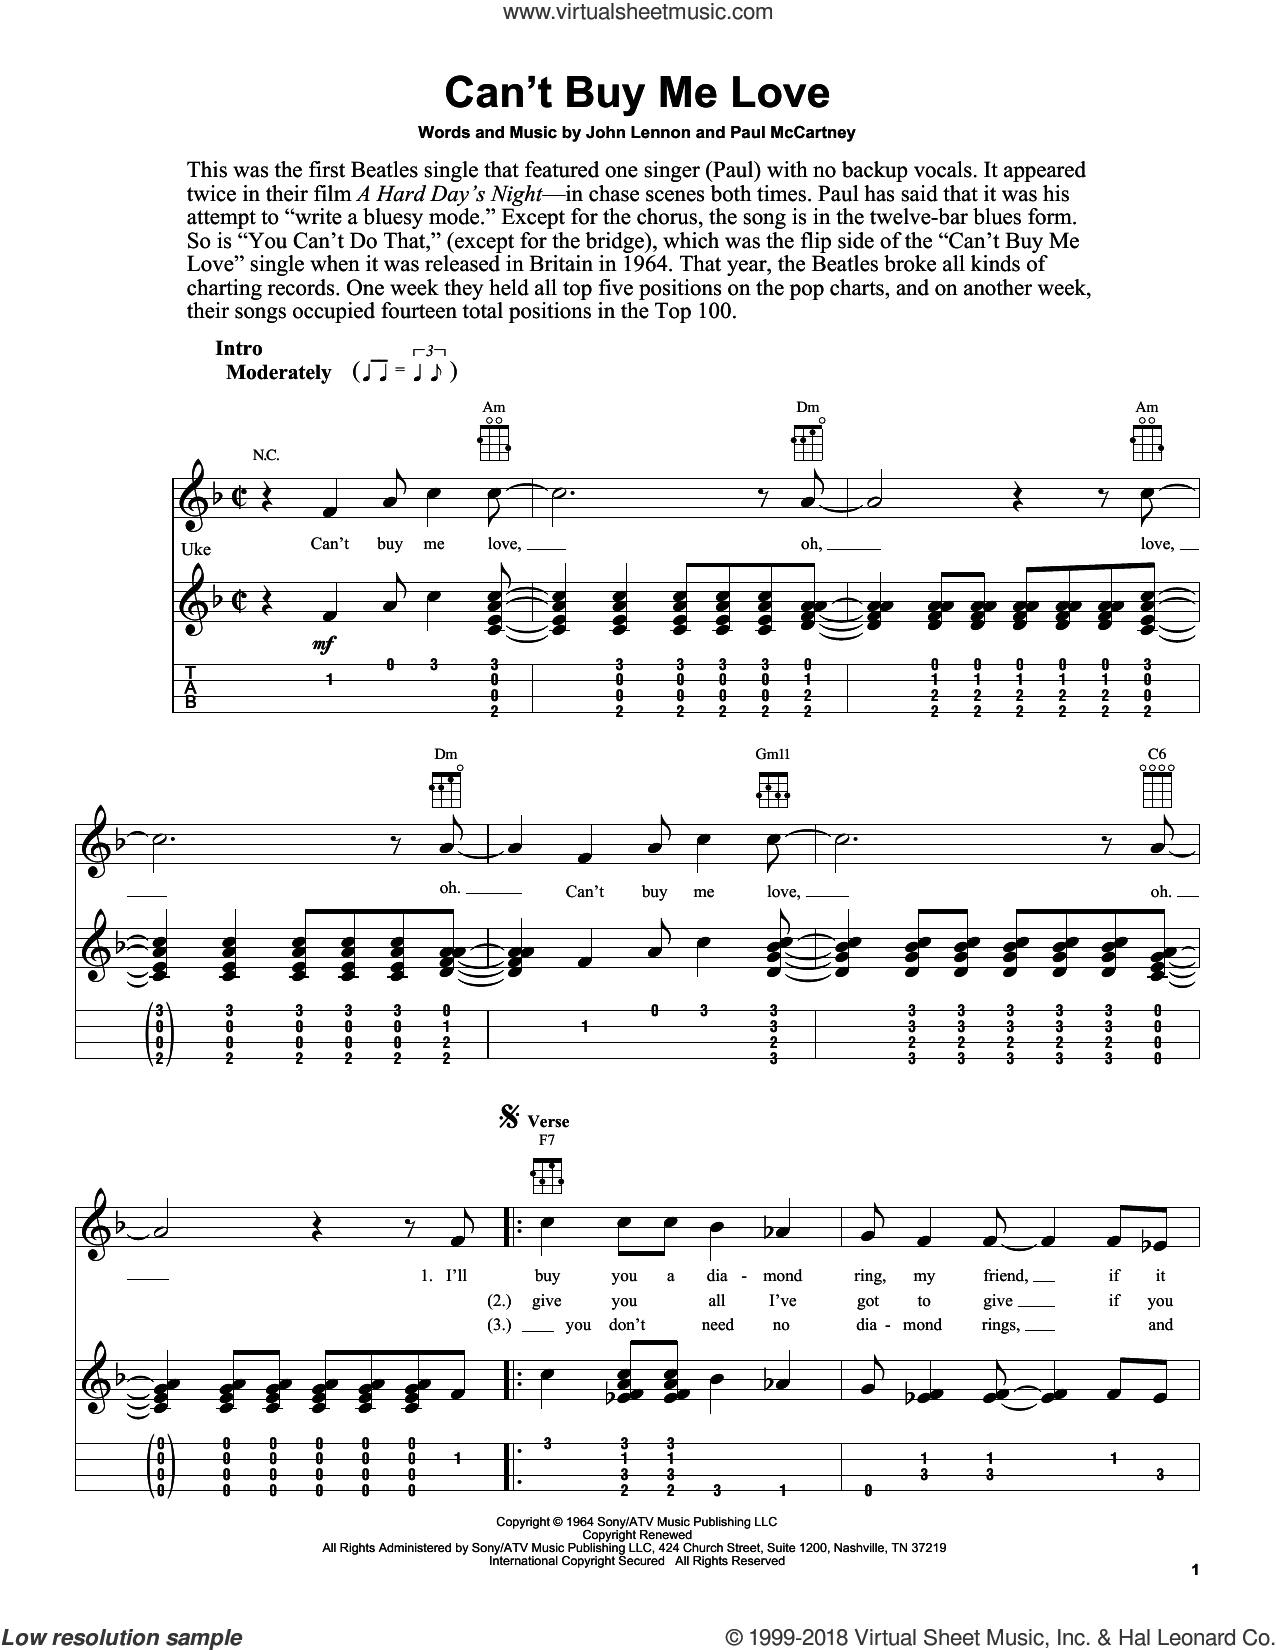 Can't Buy Me Love sheet music for ukulele by The Beatles, Fred Sokolow, John Lennon and Paul McCartney, intermediate skill level